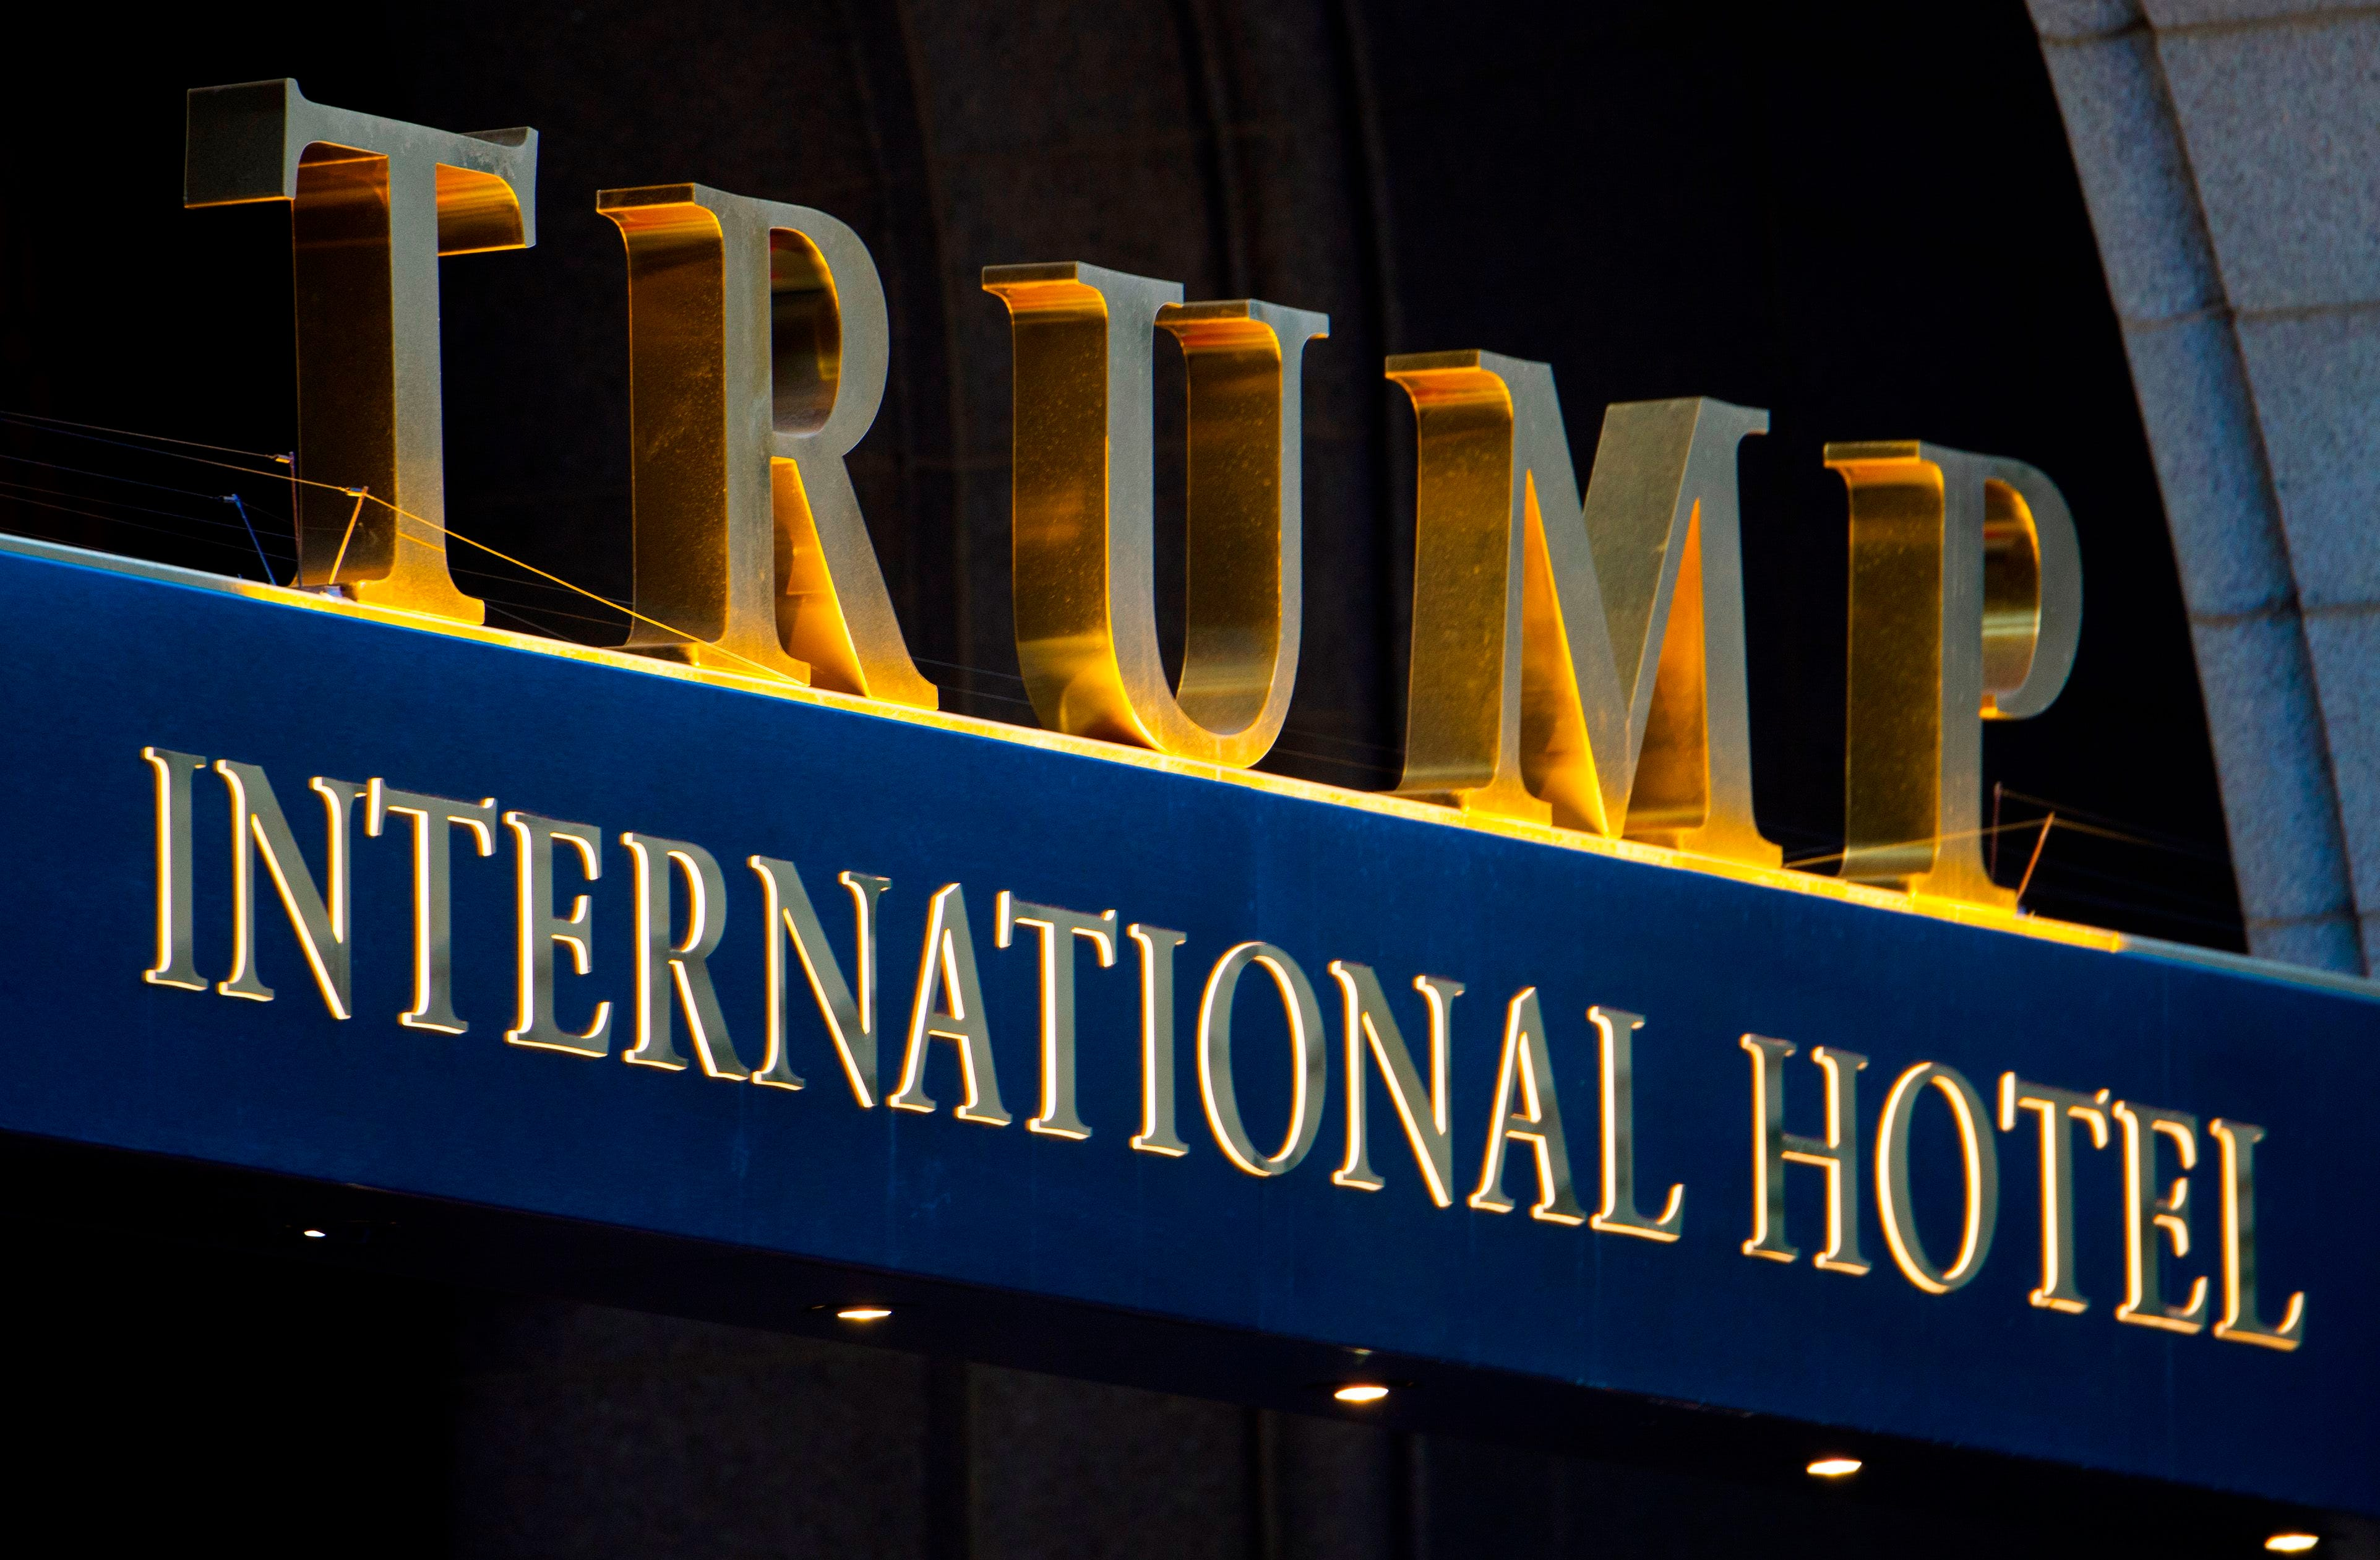 Will Donald Trump's hotel lose its liquor license over his bad character? Stay tuned.